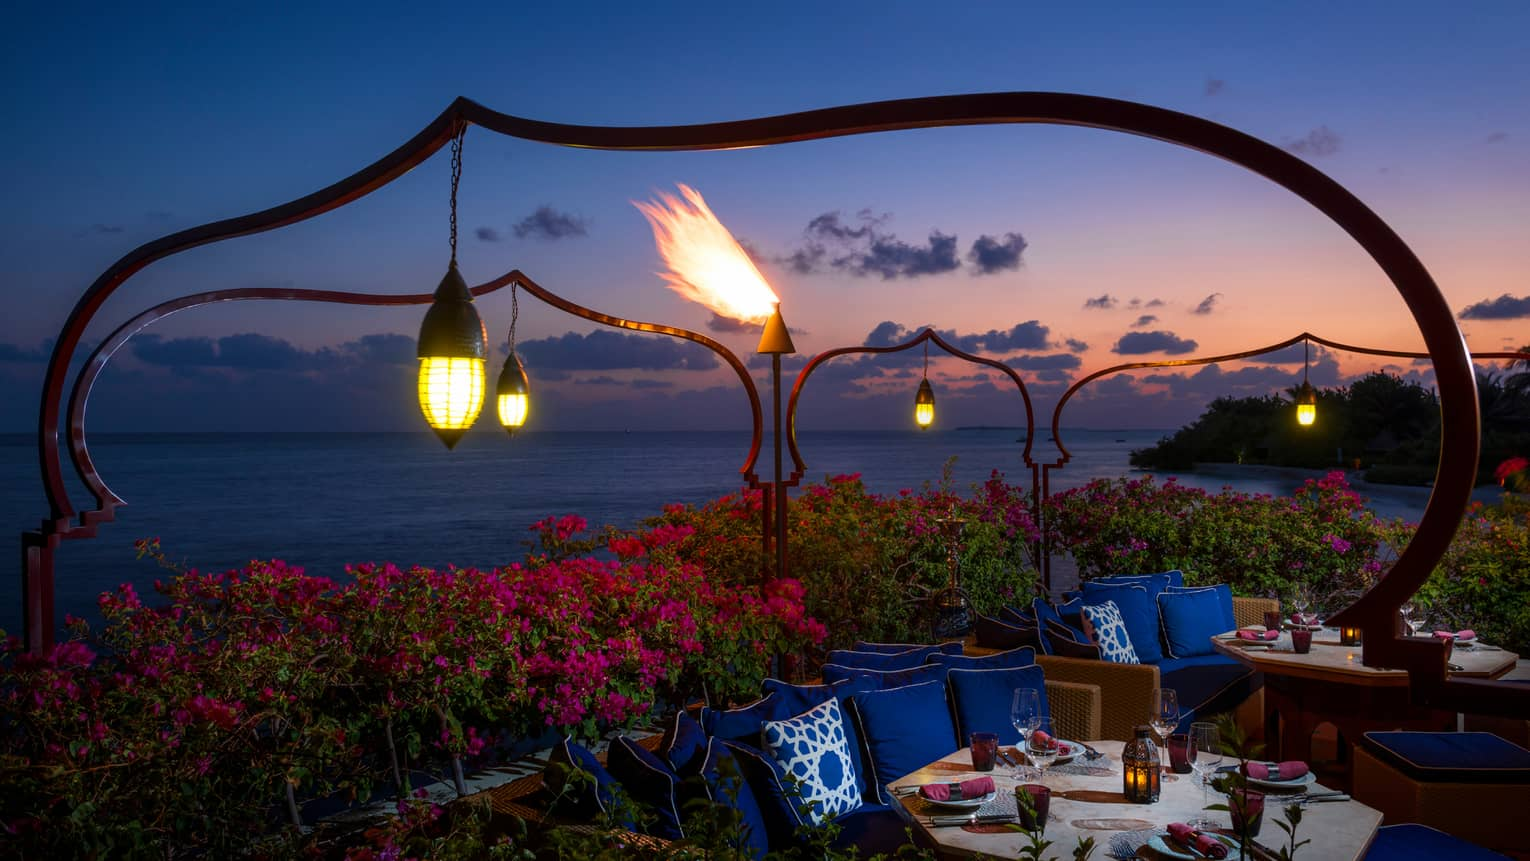 Lanterns hang over pink tropical gardens, booths with dining tables, plush blue pillows at night